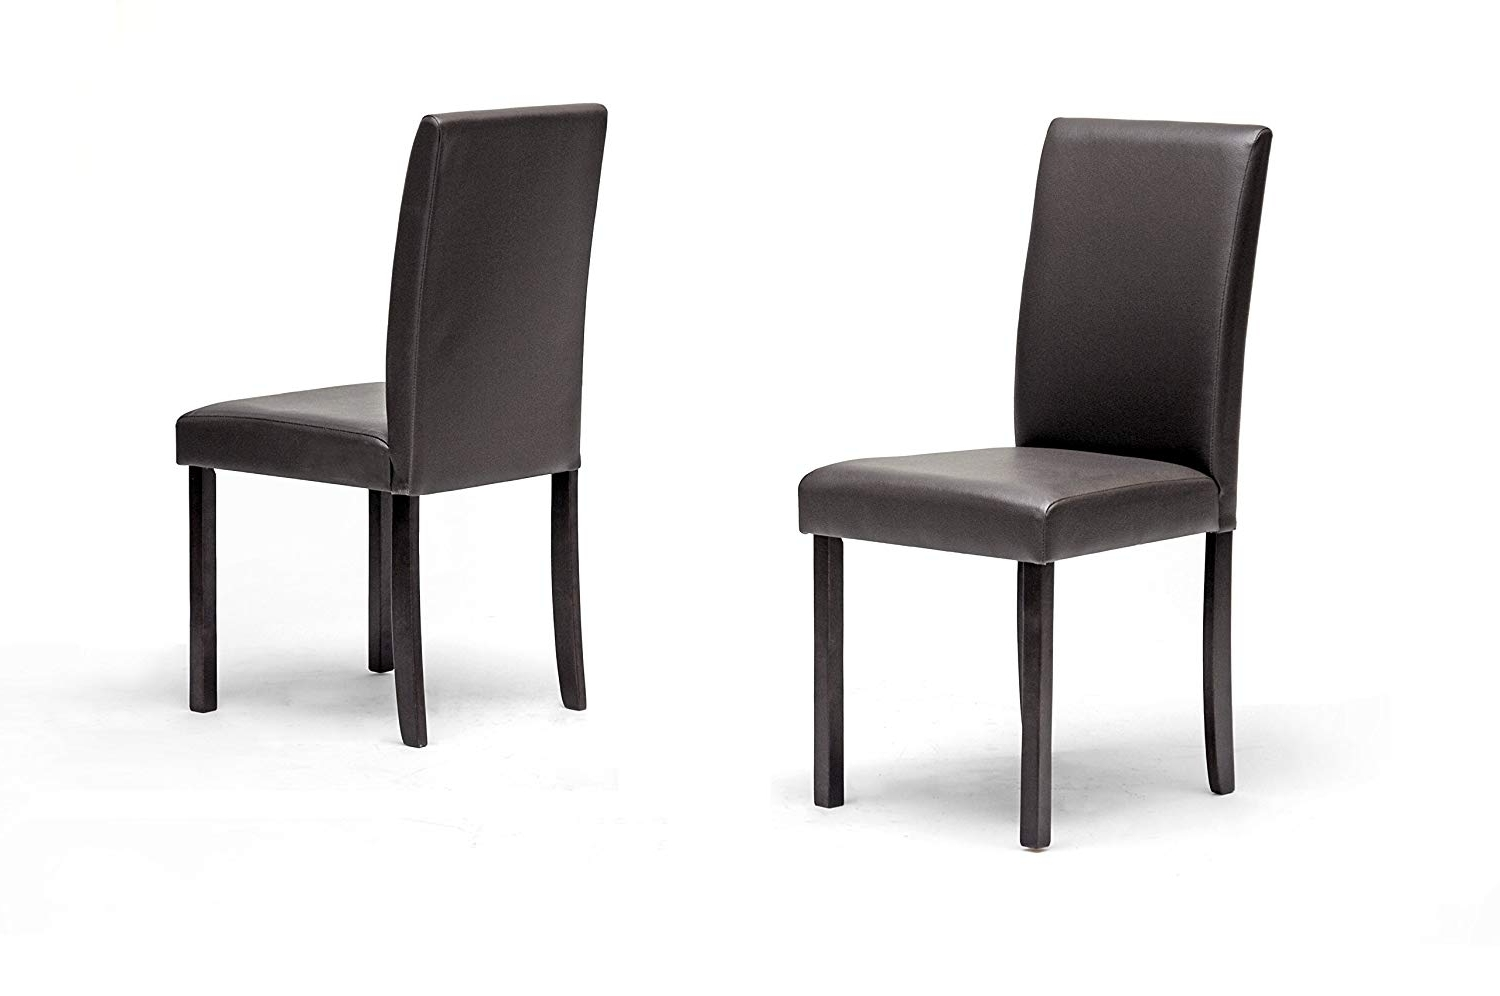 Dark Brown Leather Dining Chairs intended for Most Recently Released Amazon - Baxton Studio Andrew Modern Dining Chair, Set Of 2 - Chairs